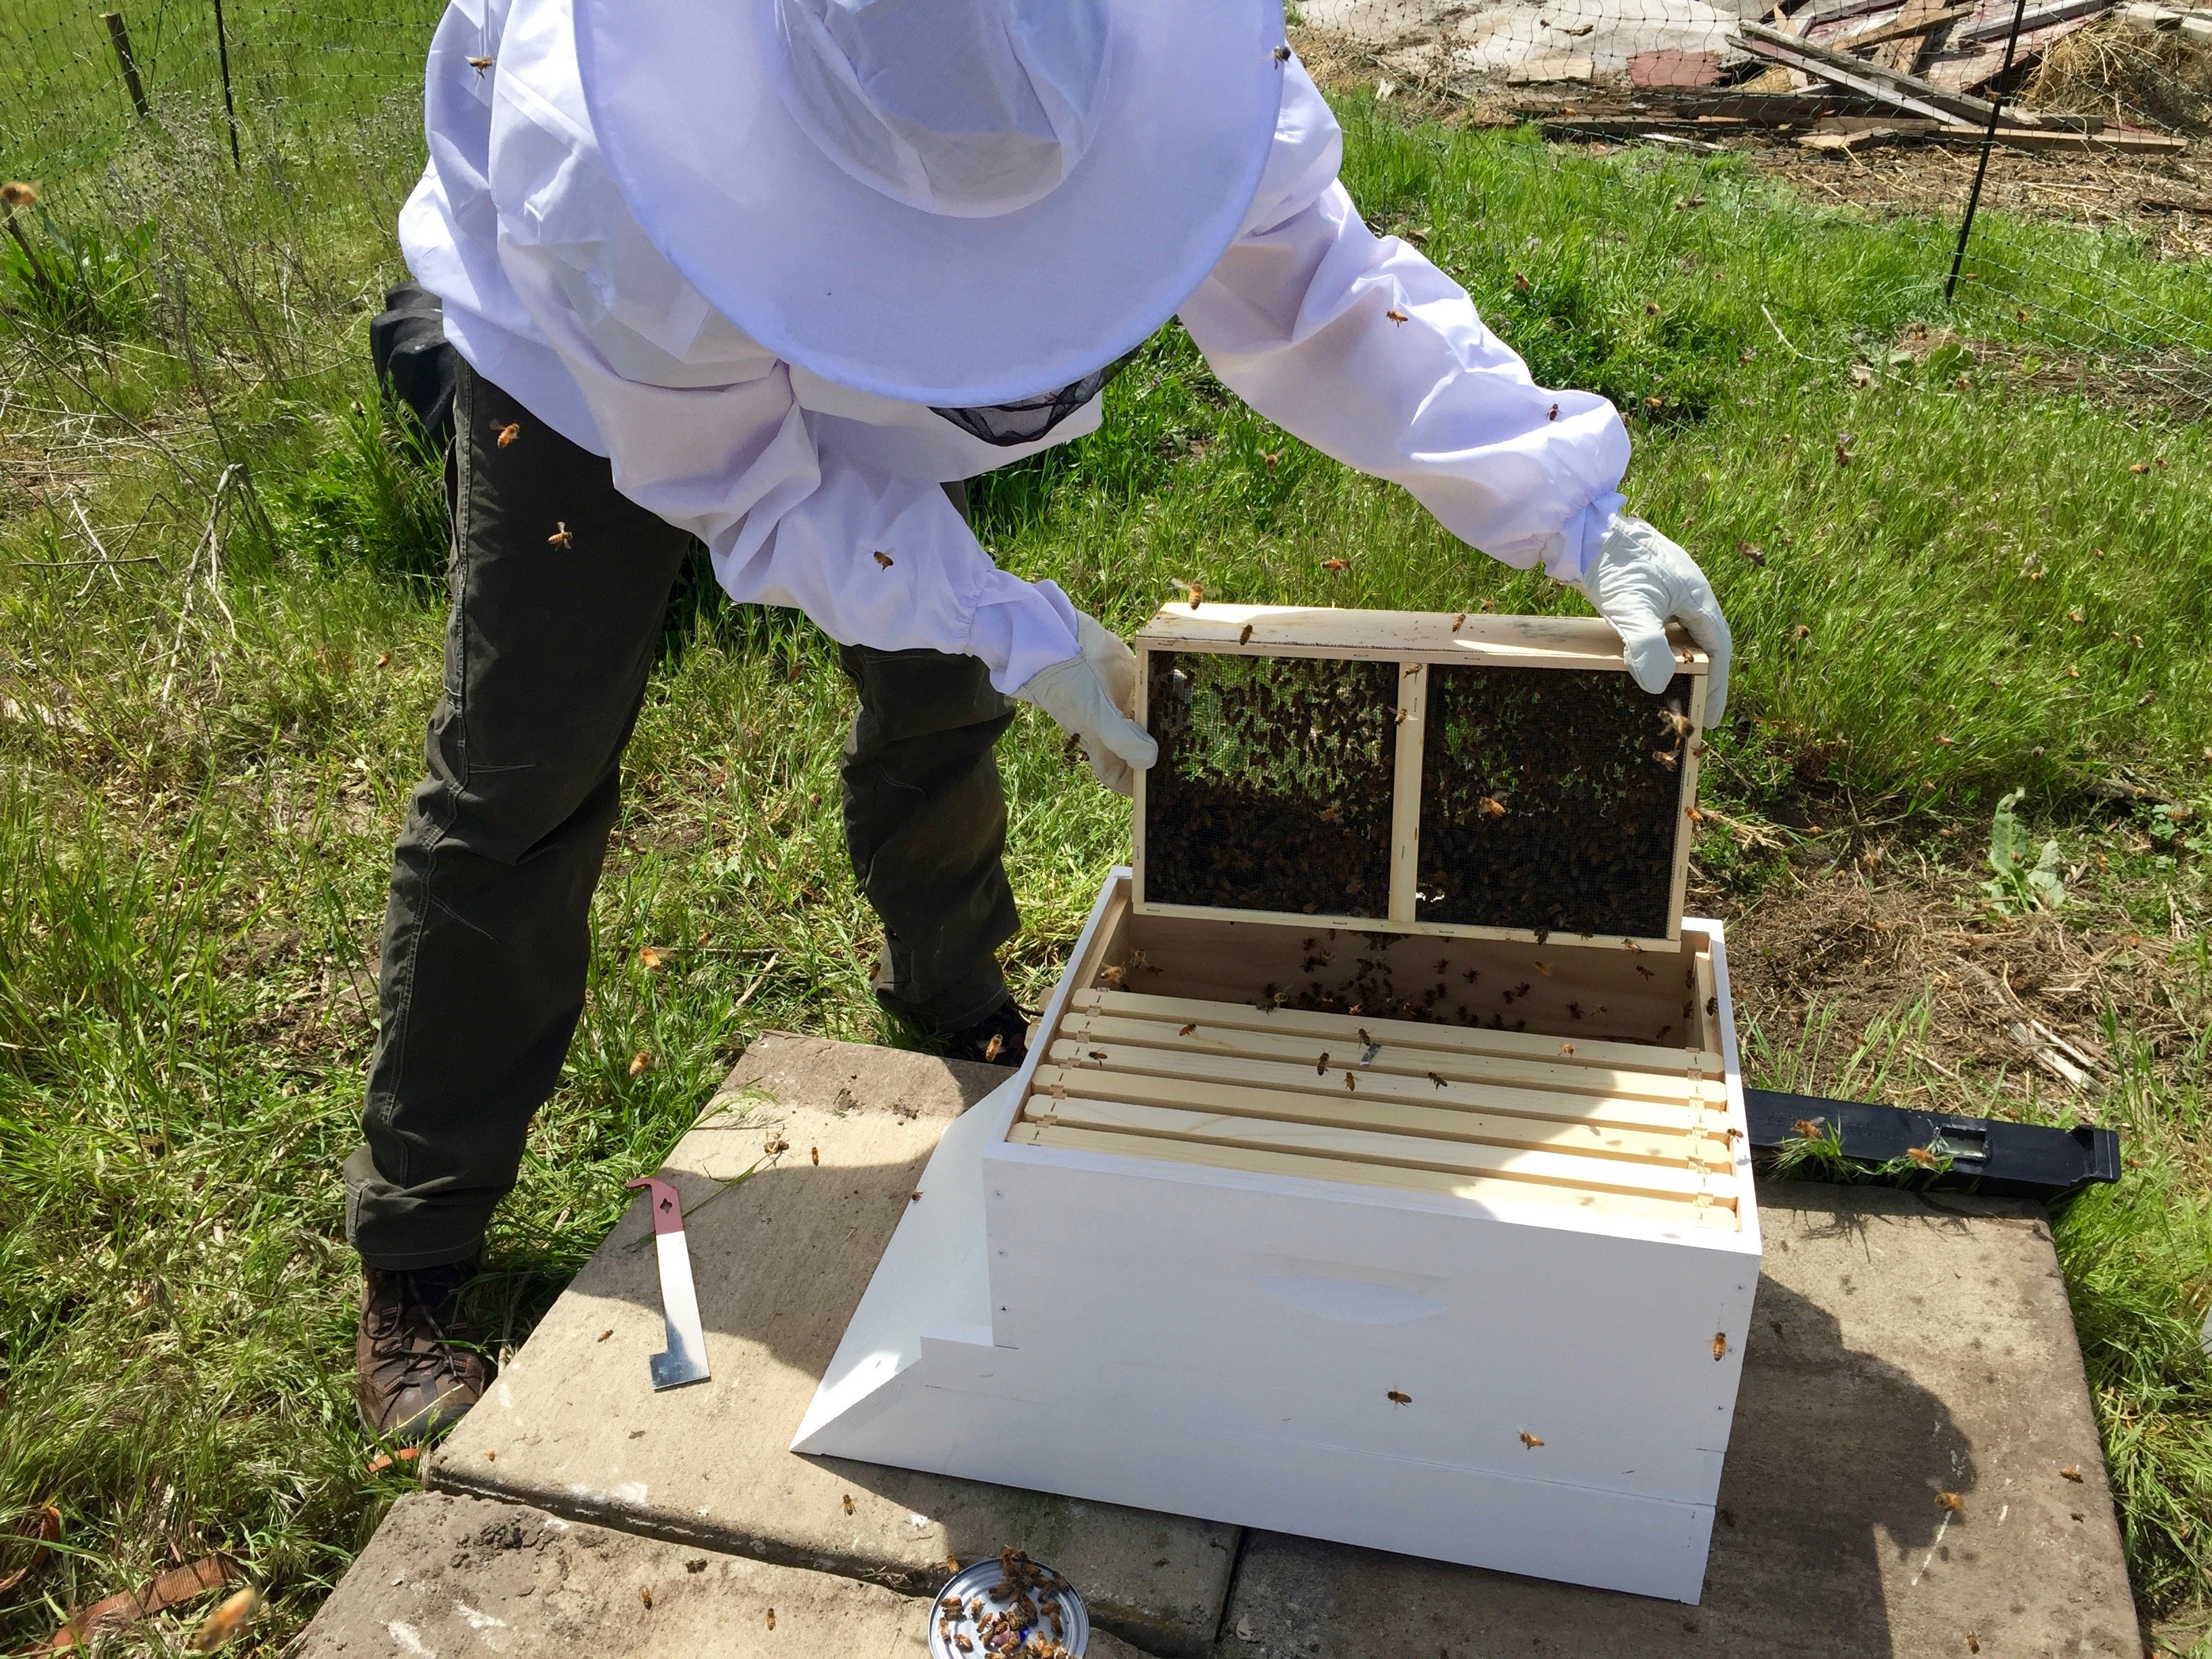 Dumping bees into hive